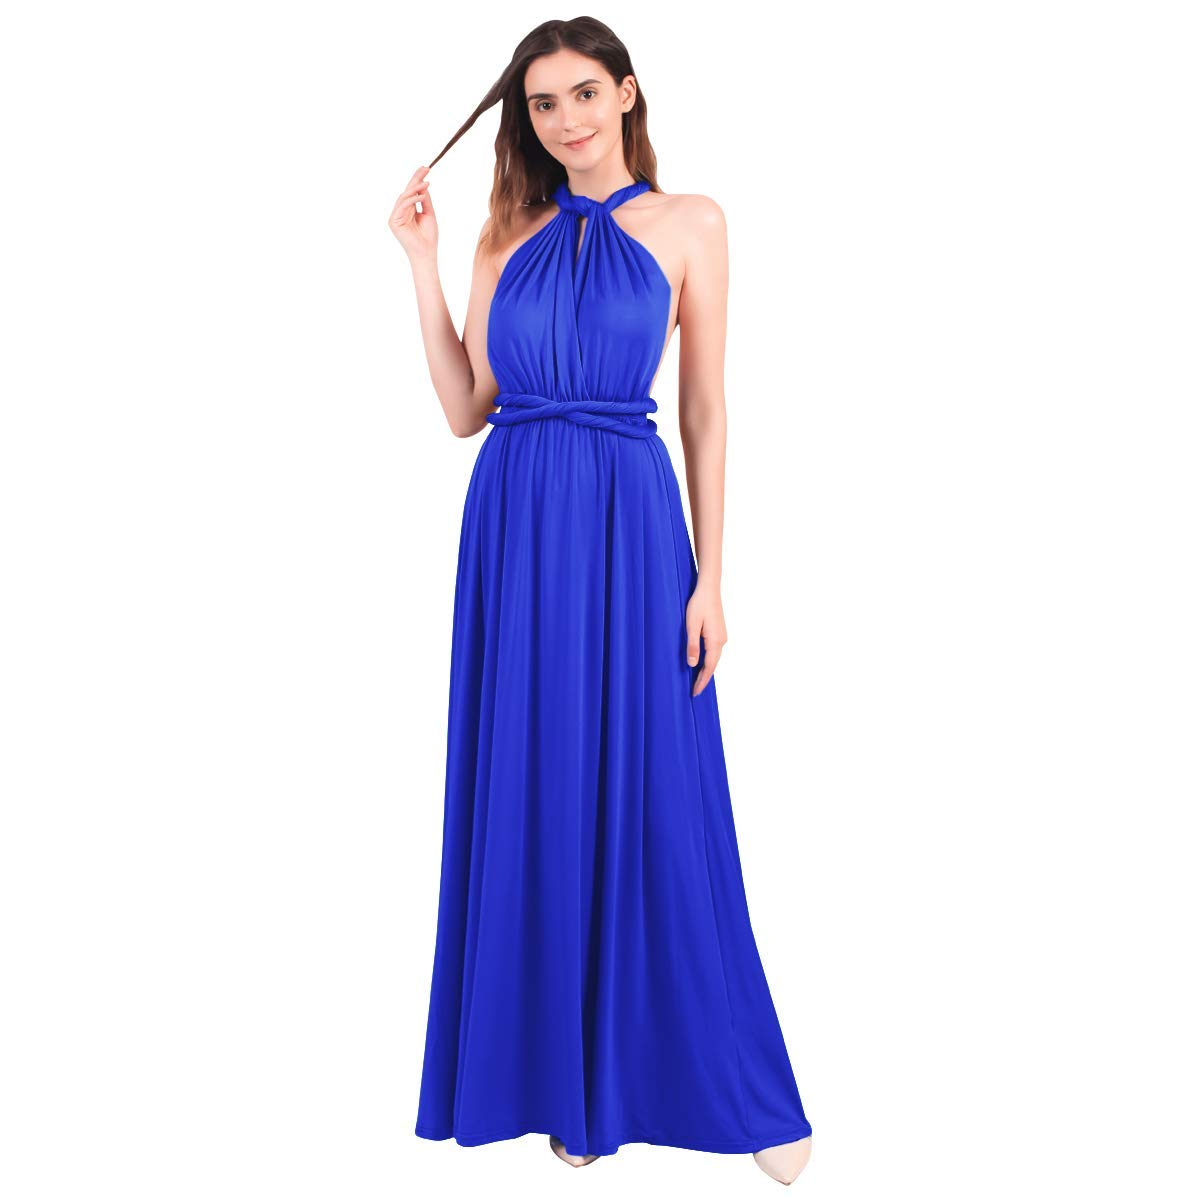 Available at Amazon: Women's Transformer Evening Dress Maxi Cocktail Wrap Convertible Multi Way Floor Long Formal Gown